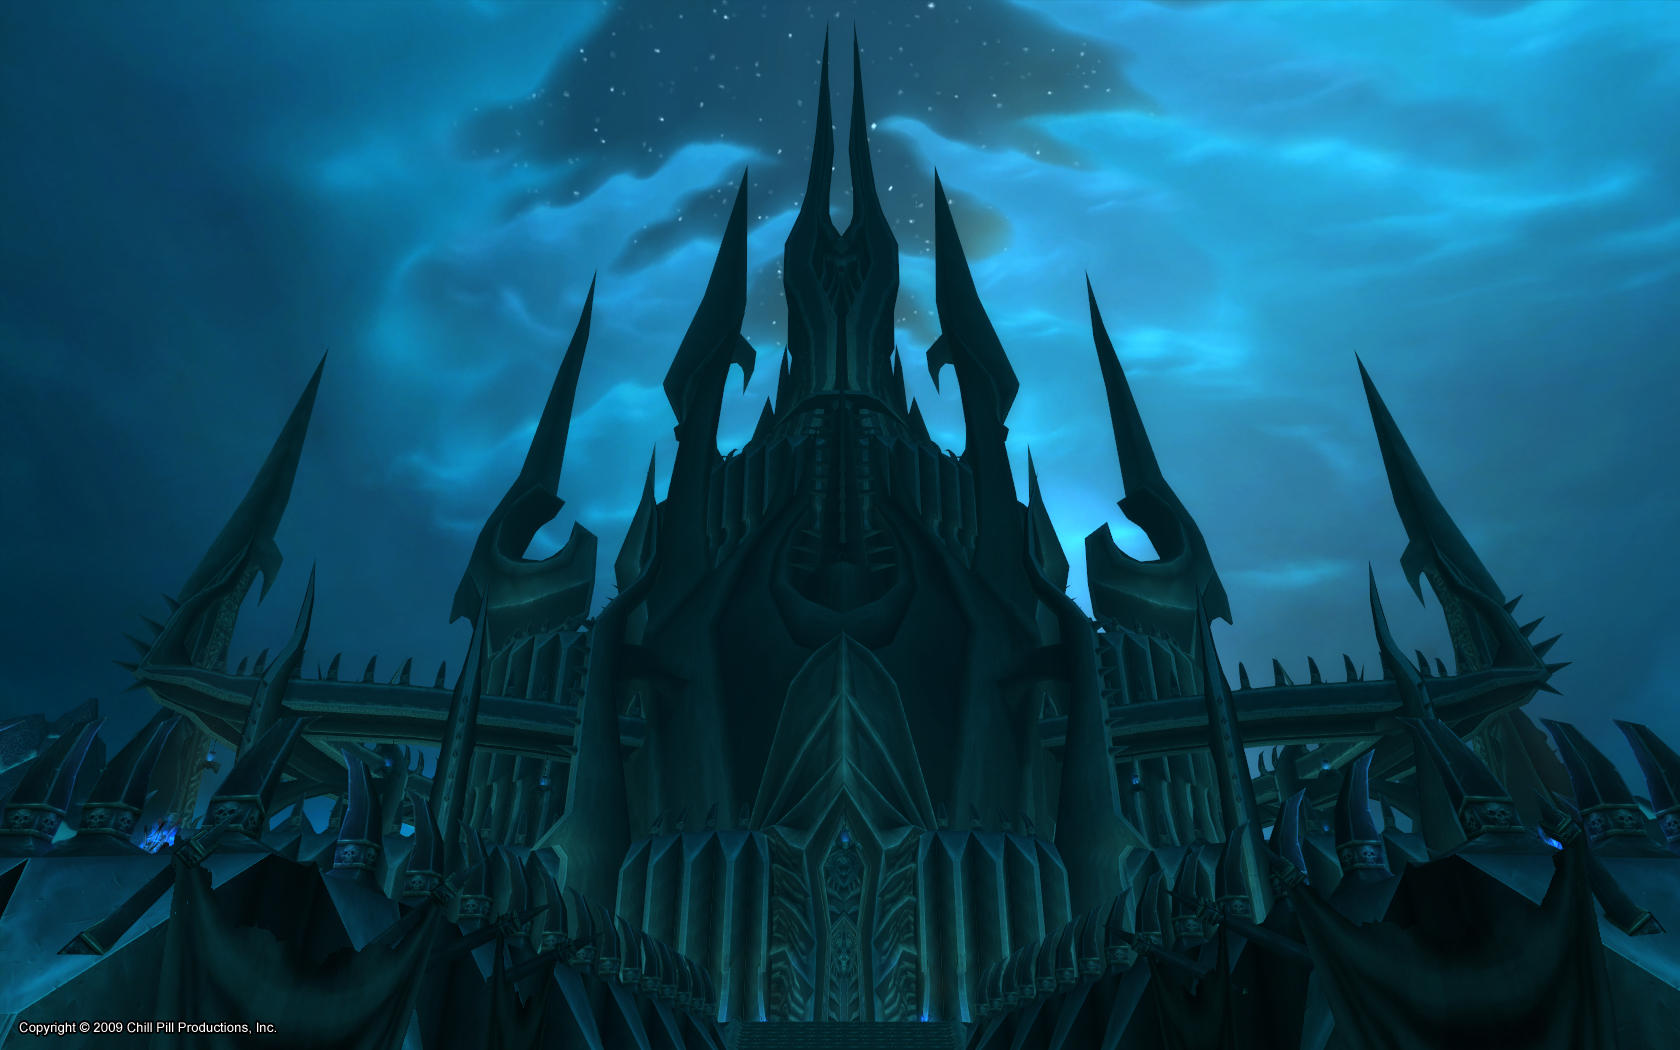 https://vignette.wikia.nocookie.net/wow-freedom/images/4/45/Icecrown_citadel.jpg/revision/latest?cb=20110122055804